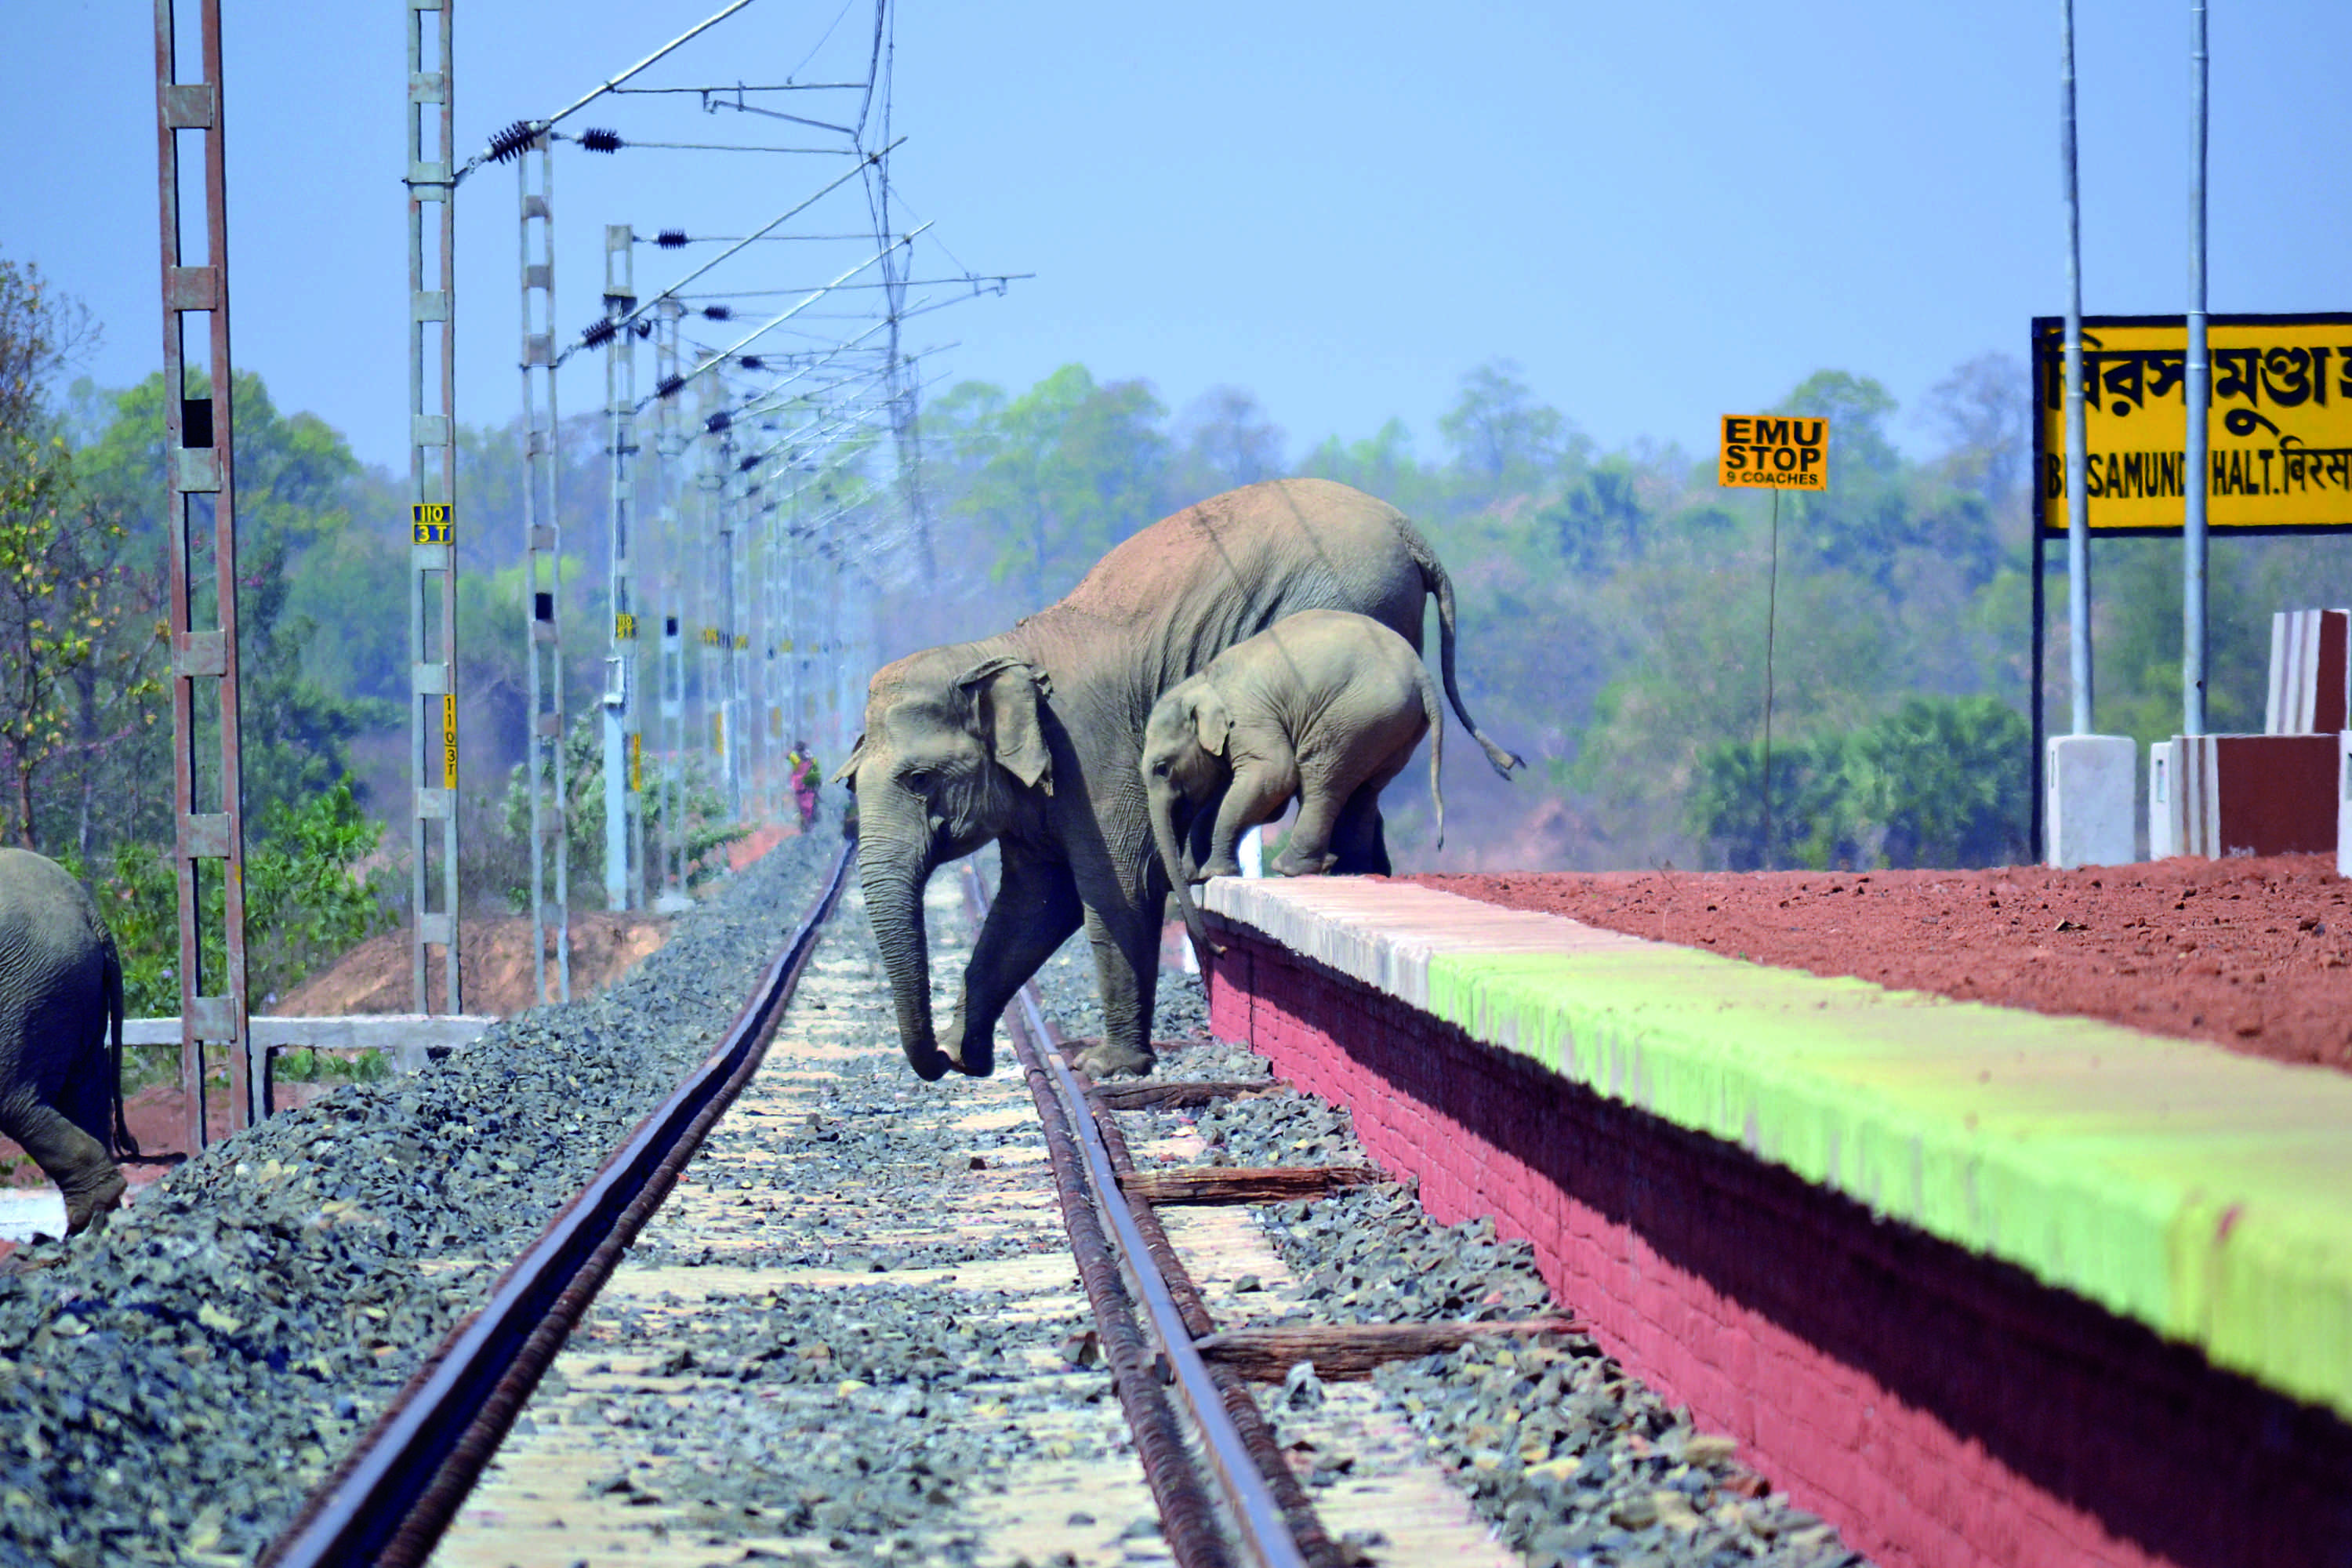 """Two elephants try to negotiate a railway crossing in 'Impossible Odds' by Biplab Hazra. """"Here in the Bankura district, beleaguered herds desperately navigate a landscape that would be unrecognisable to their foremothers,"""" says the press note. """"The railway authorities didn't consider their ancient pathways when they laid this track, and every year a memory's worth of elephants is wiped out by speeding trains...Hazra's frame is a desolate plea to make amends, a caustic statement on the ecological cost of development, an embarrassing rumination on our definition of progress."""""""